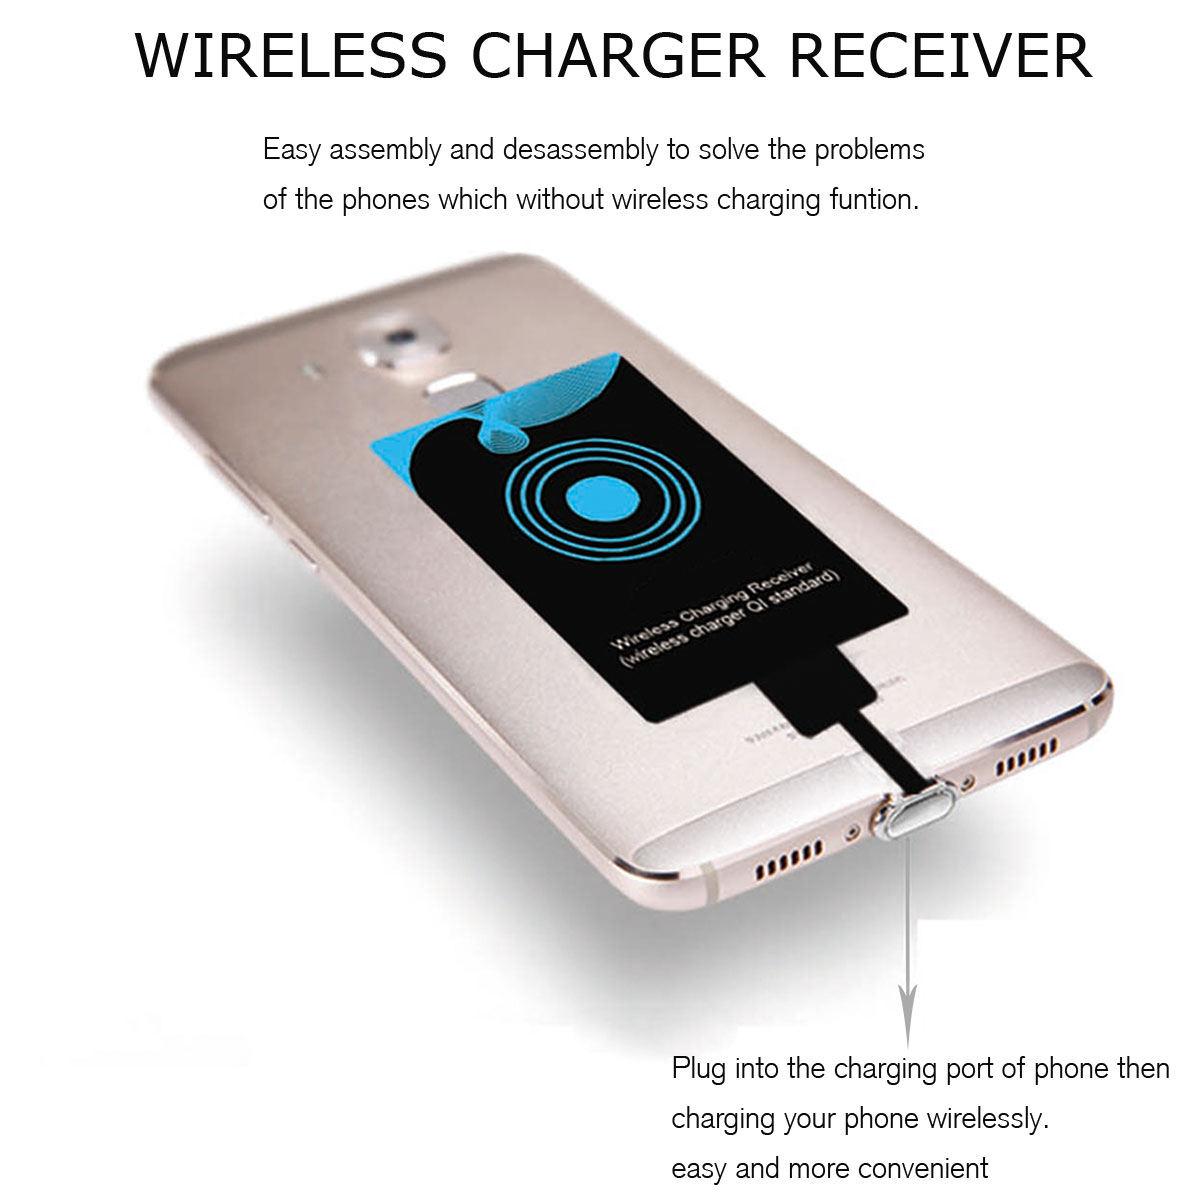 fast qi wireless power charging receiver for iphone samsung type c port lg phone ebay. Black Bedroom Furniture Sets. Home Design Ideas